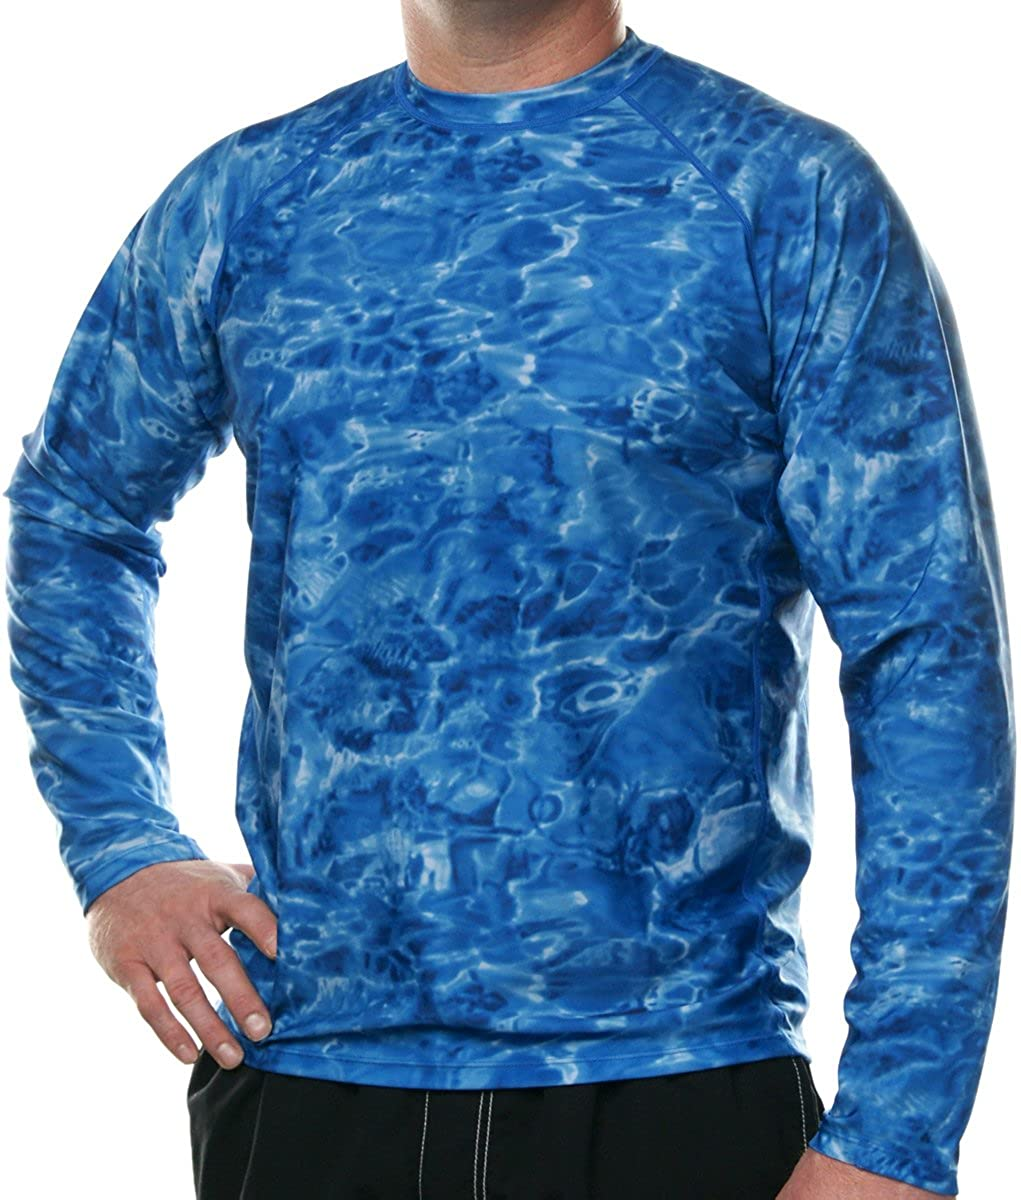 Mens Swim Rashguard Shirts Loose Fit Long Sleeve Sun Protection Rash Guard Aqua Design